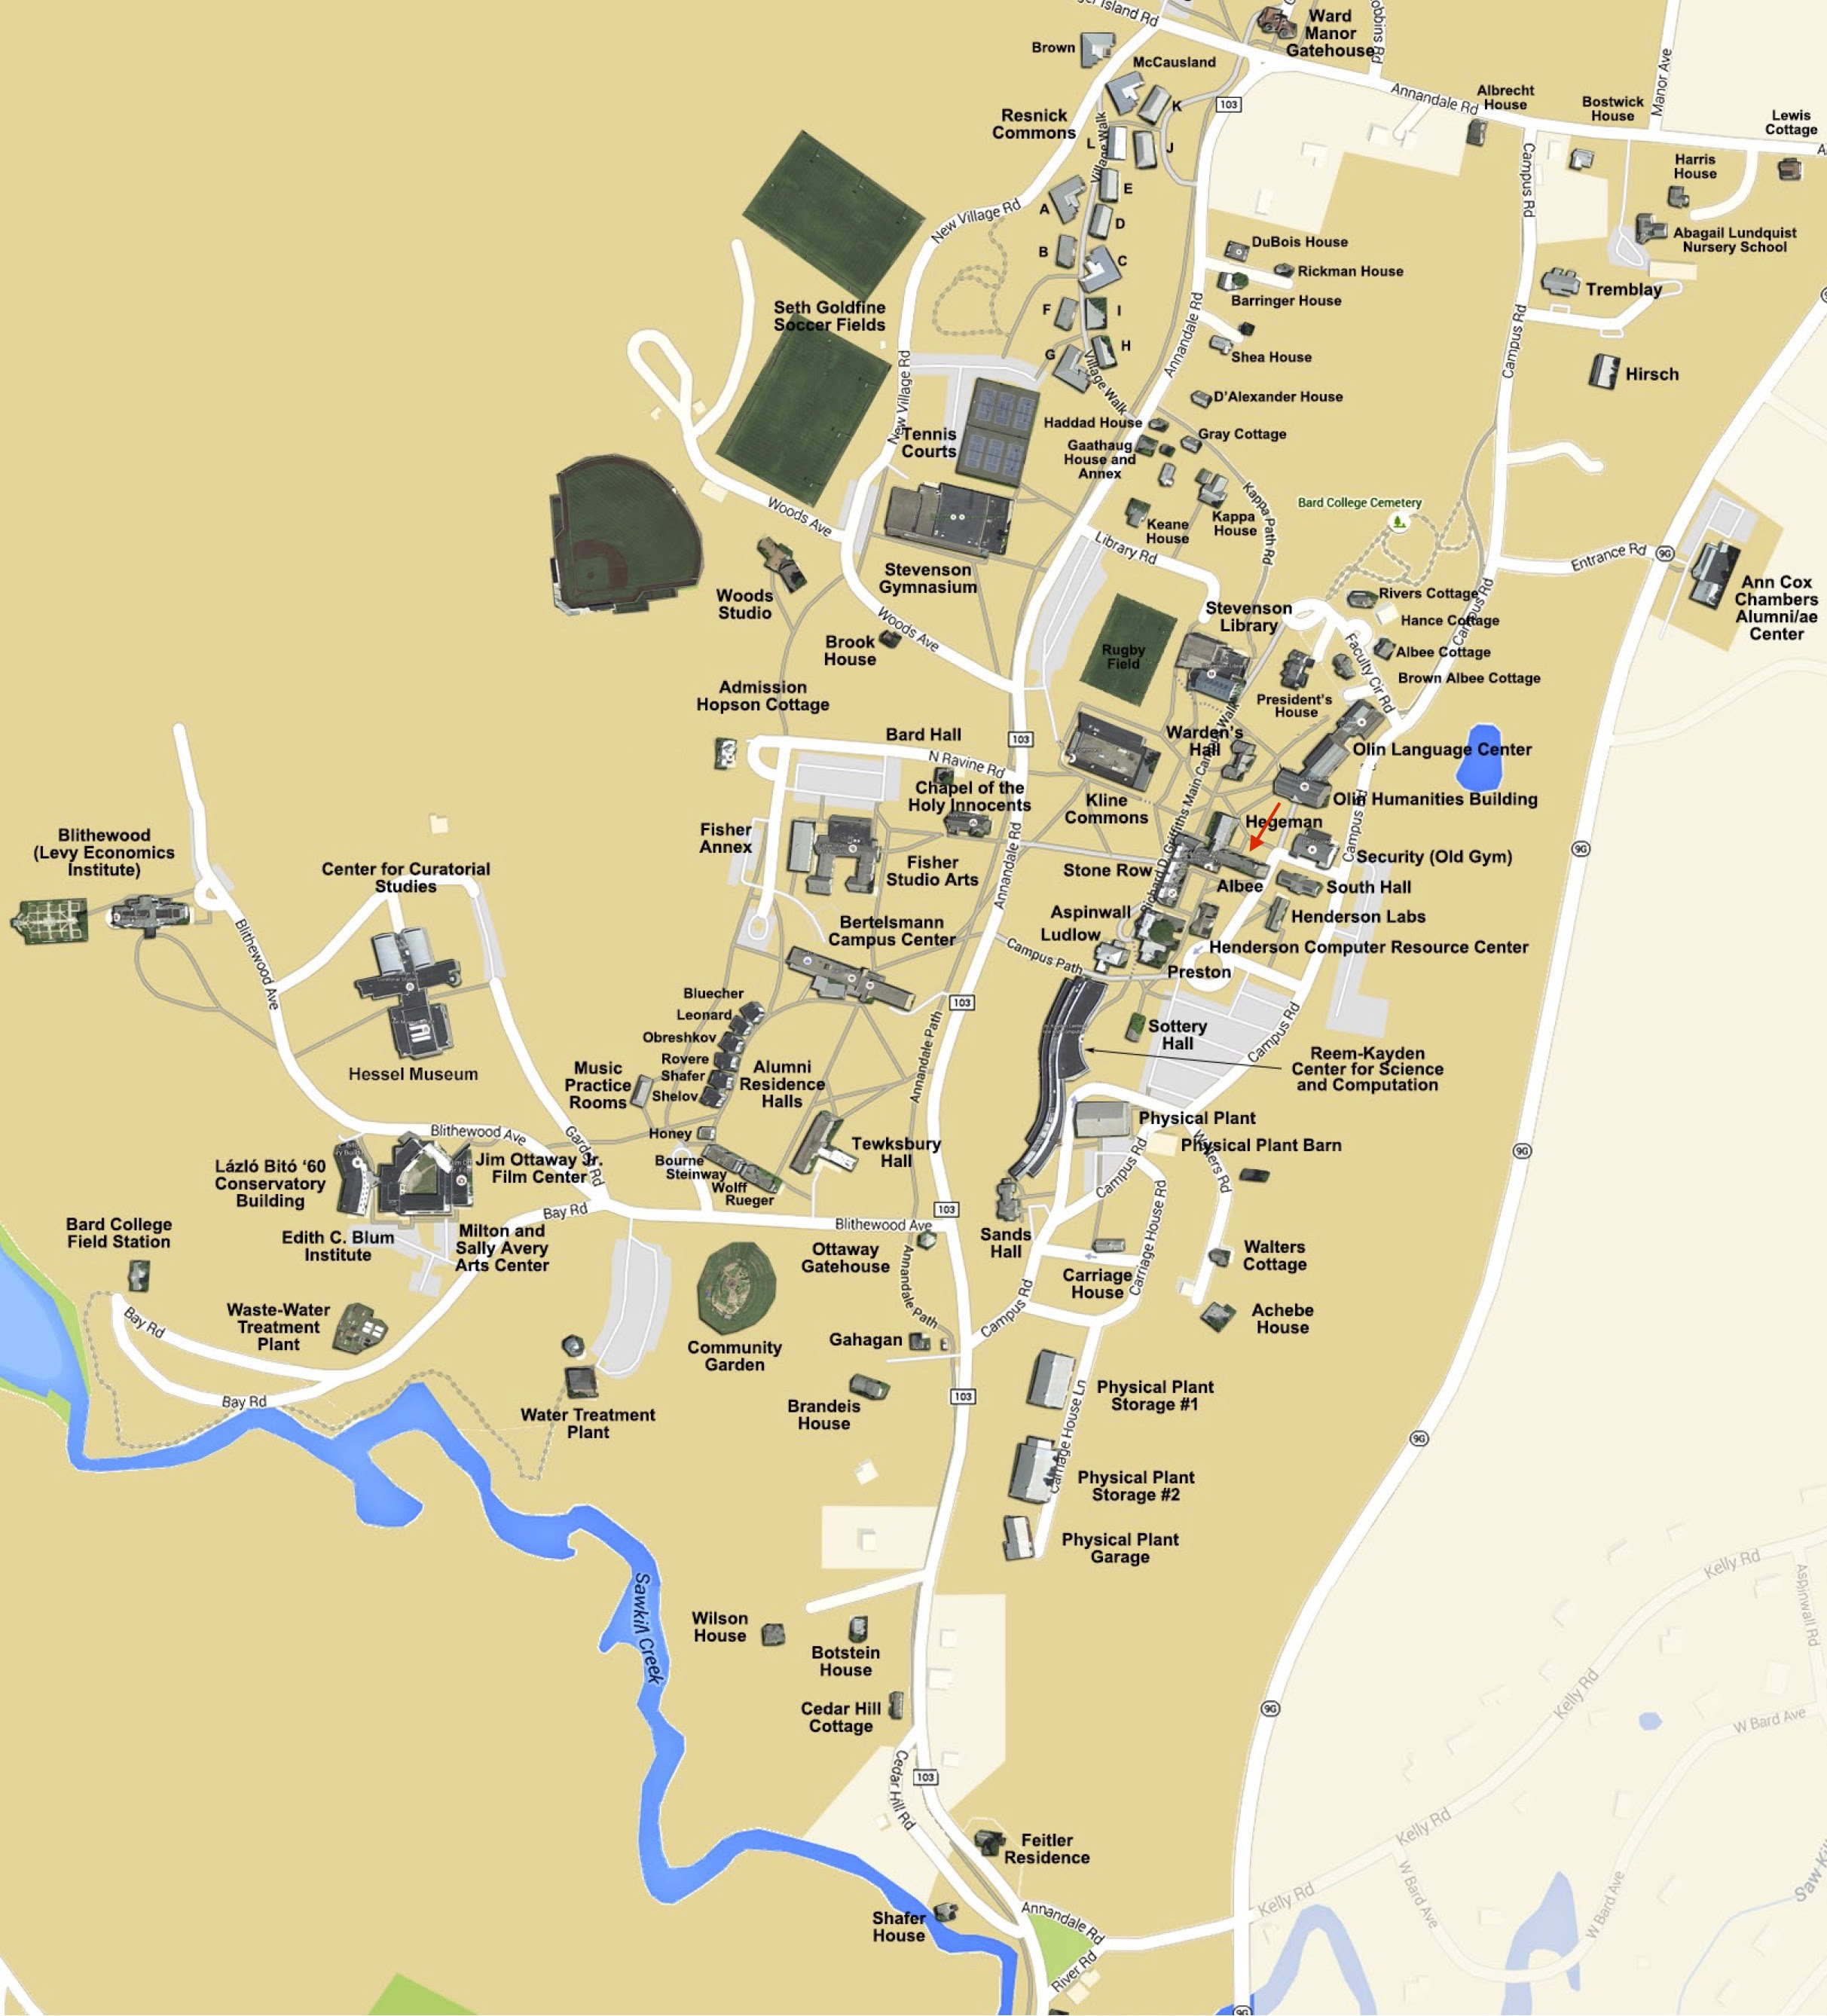 Bard College Map Bard College Campus Map | Earth Map